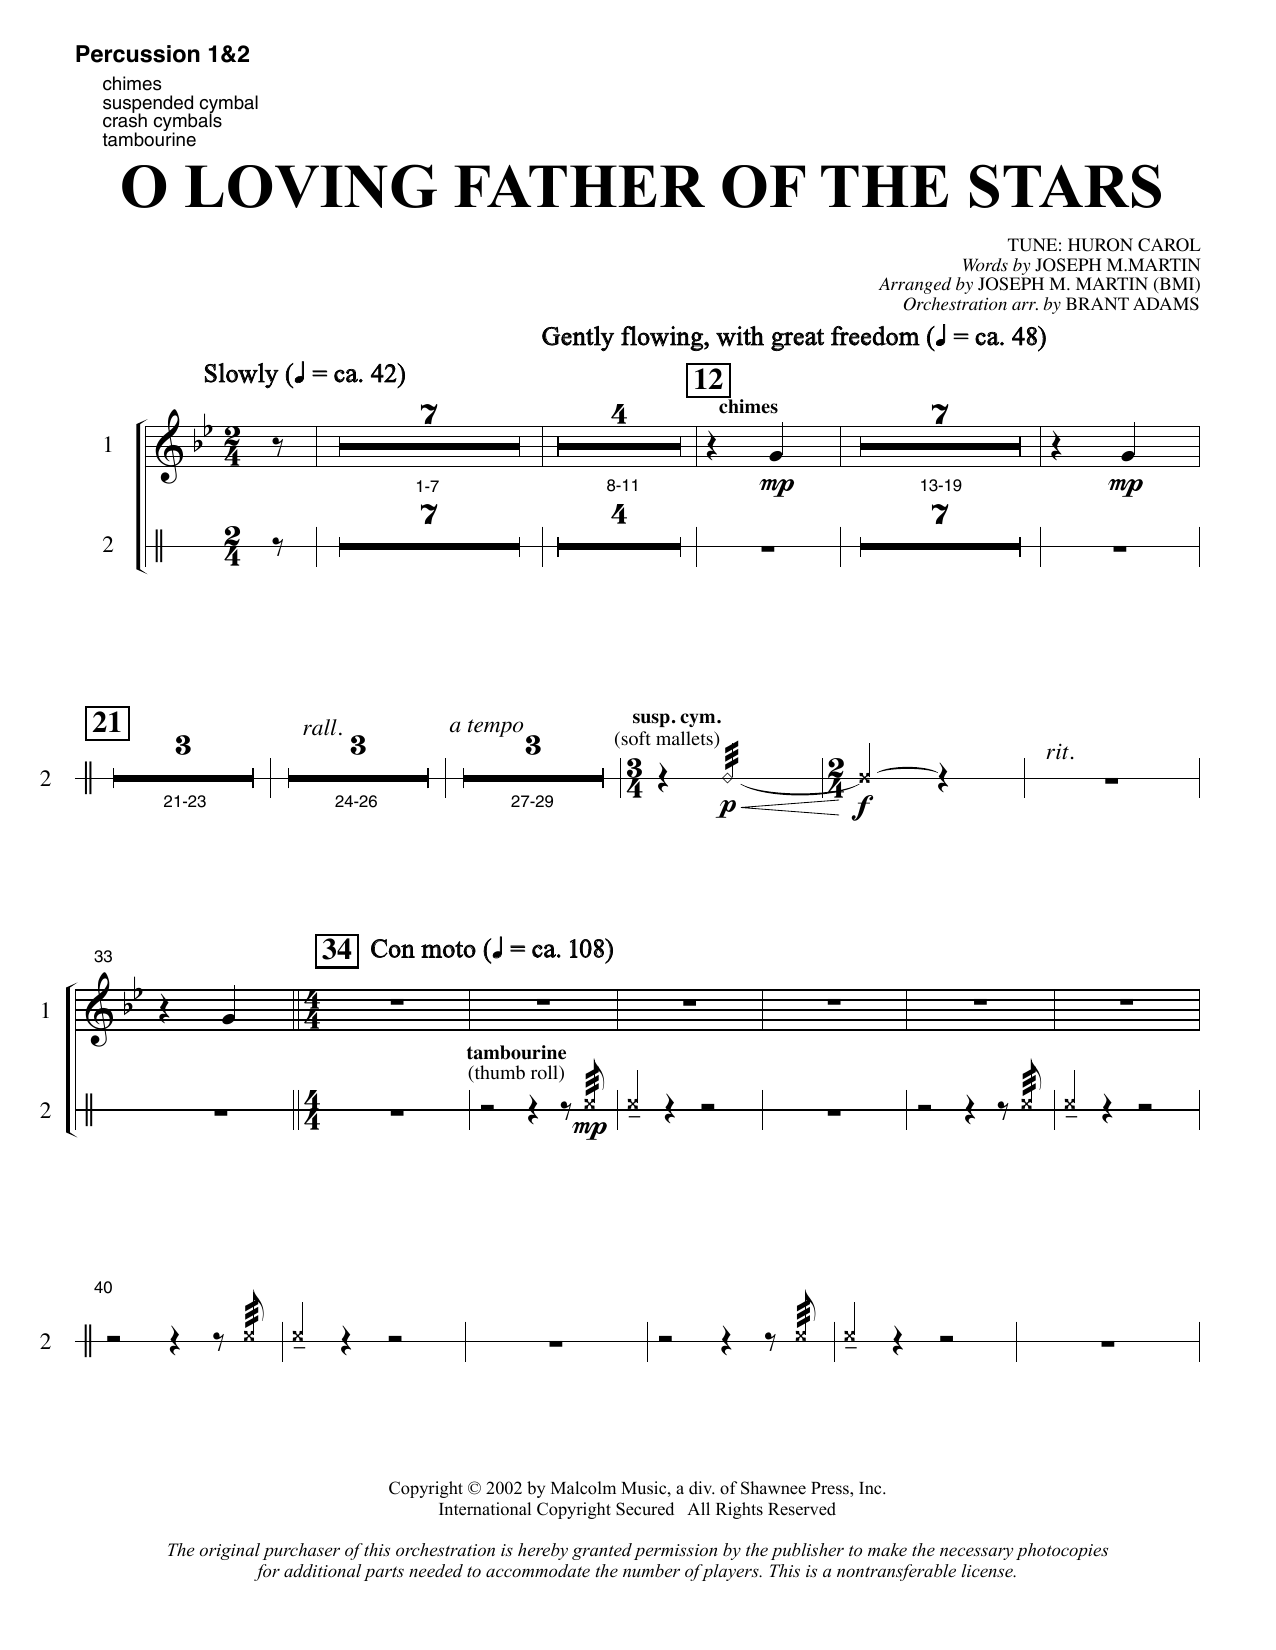 Joseph M. Martin O Loving Father Of The Stars (from Morning Star) - Percussion 1 & 2 sheet music notes and chords. Download Printable PDF.